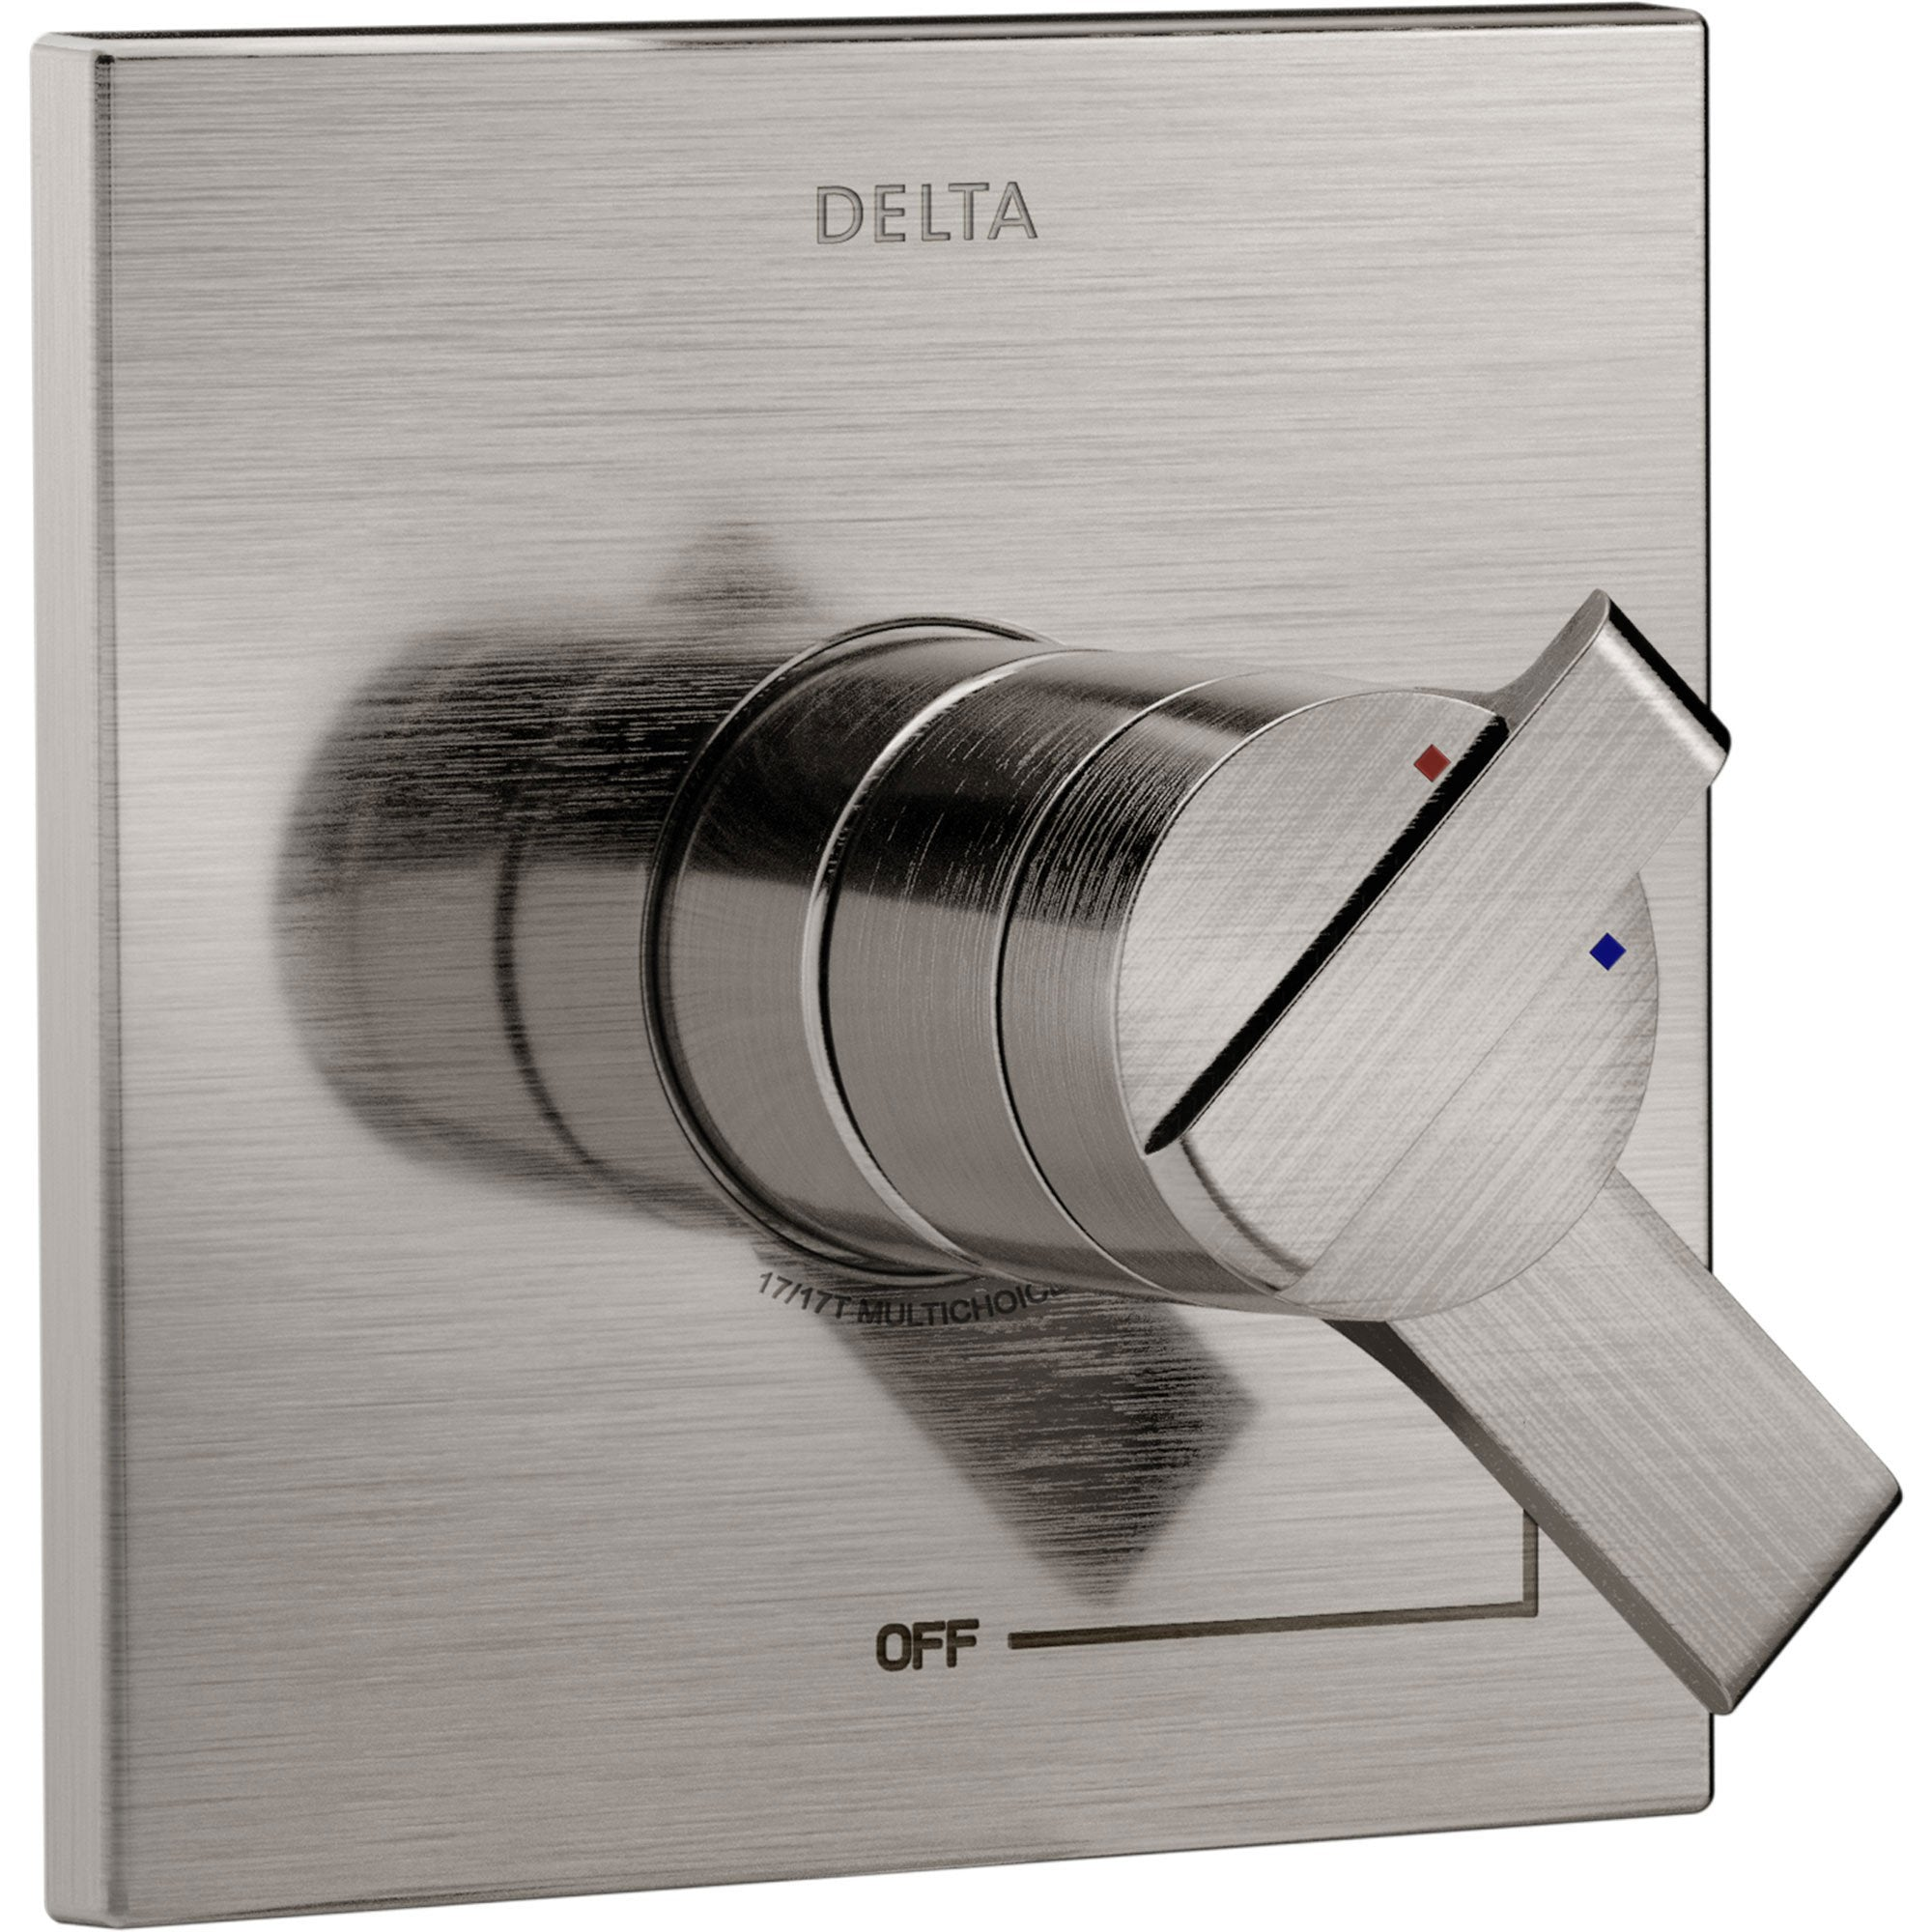 Delta Ara Modern Stainless Steel Finish 17 Series Dual Temperature and Pressure Shower Faucet Control INCLUDES Rough-in Valve D1148V